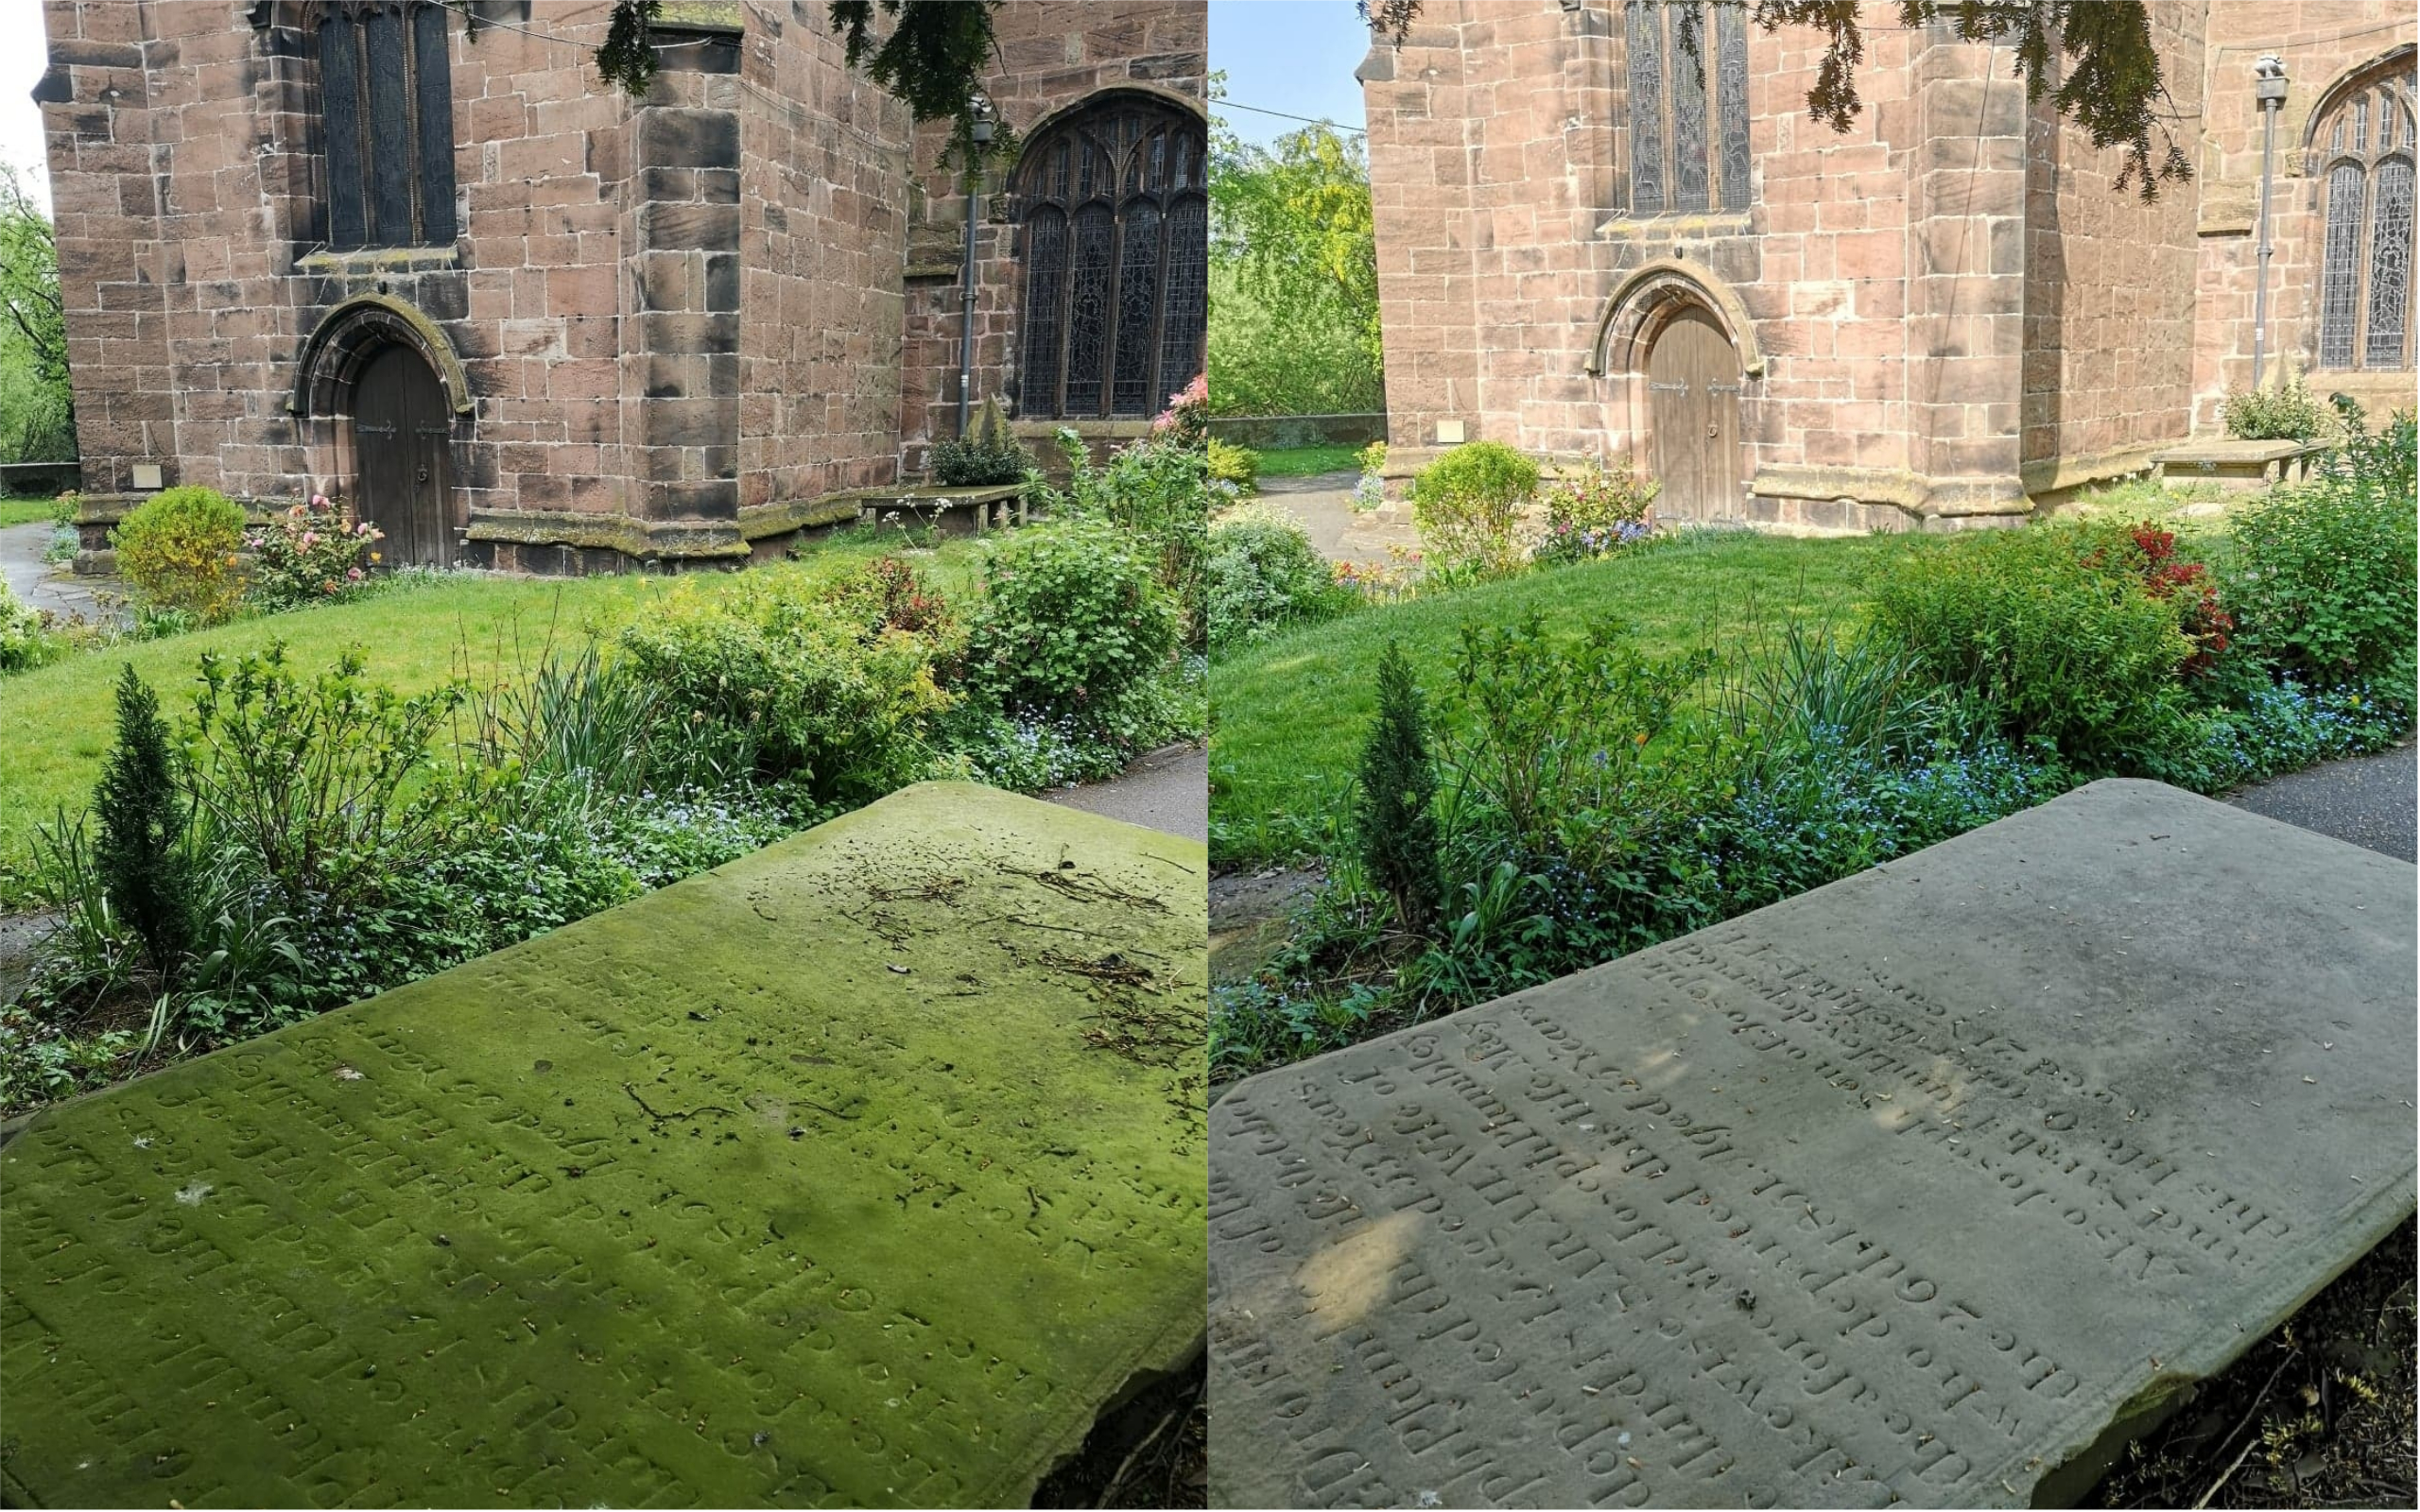 A gravestone before and after being cleaned up